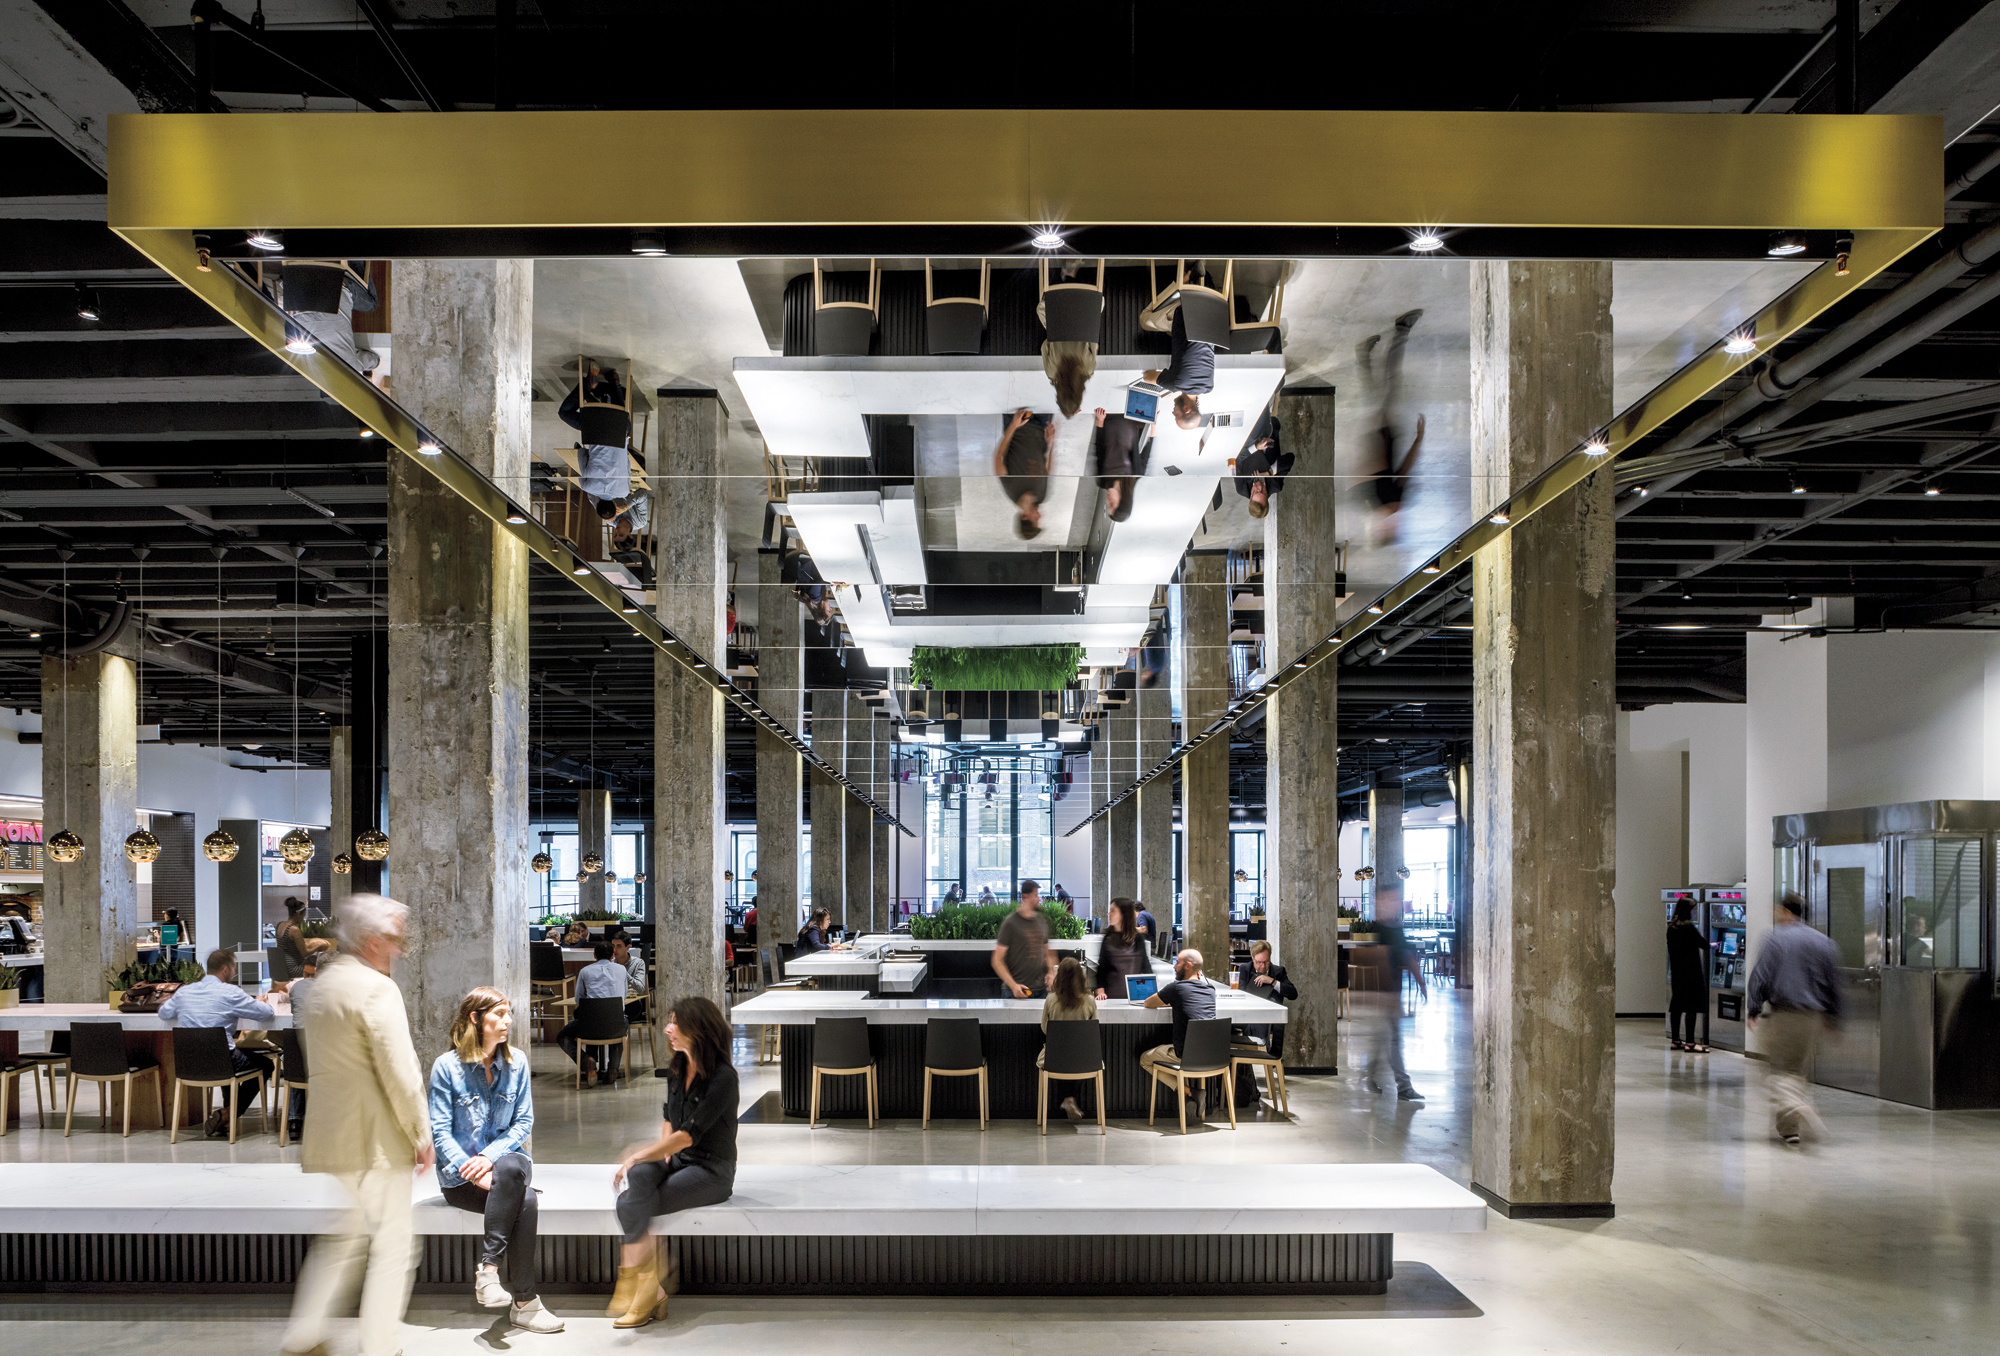 Mart food hall by a i 2016 best of year winner for for Best hall designs